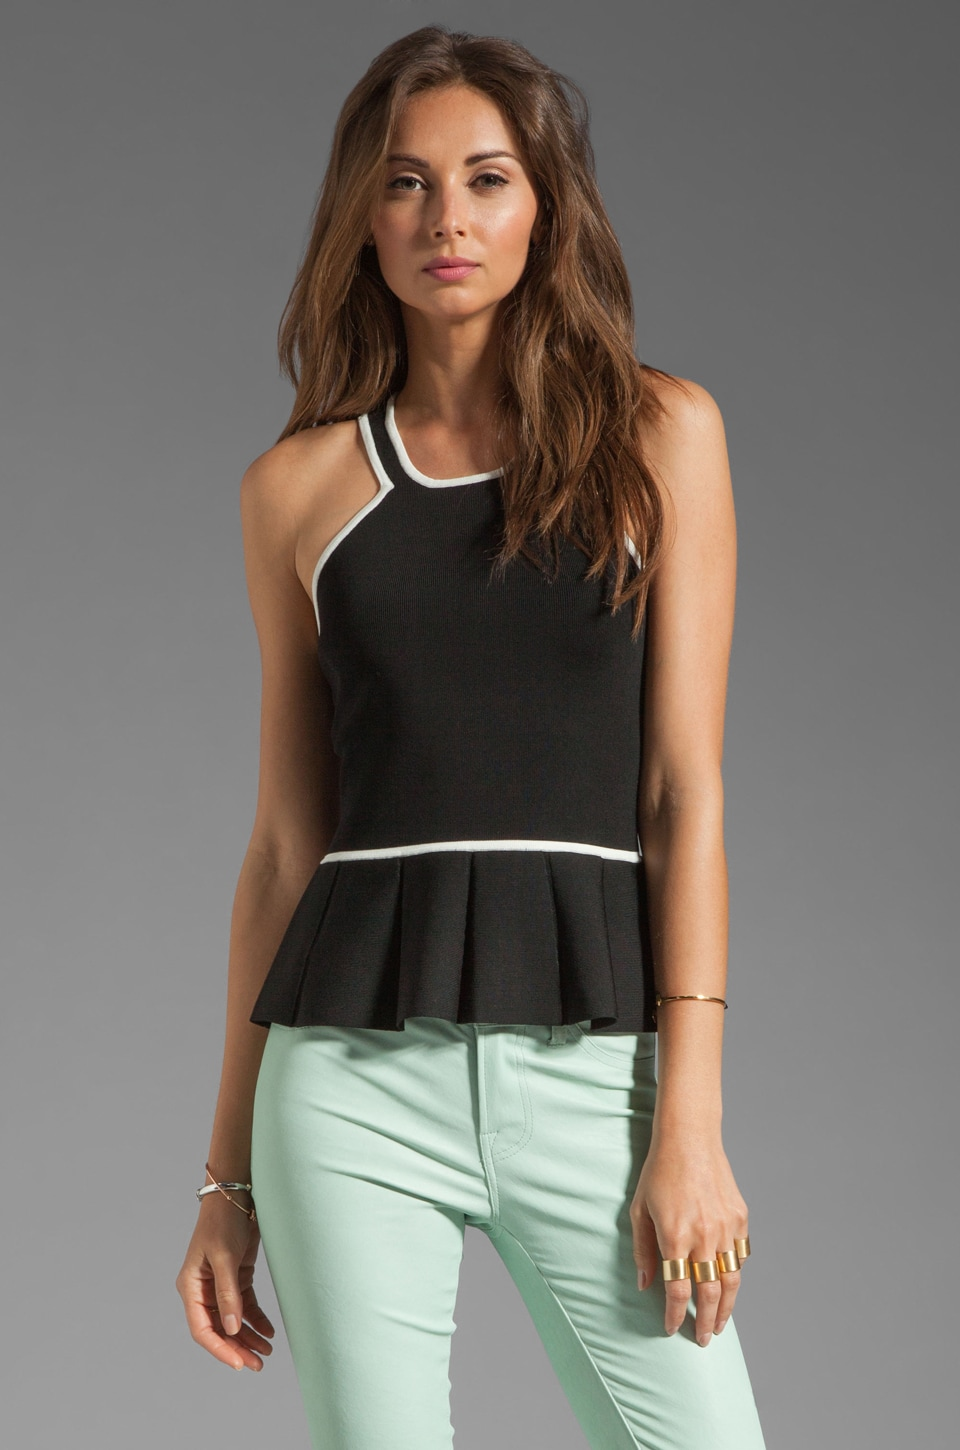 Parker Alix Contrast Knit Top in Black/Ivory